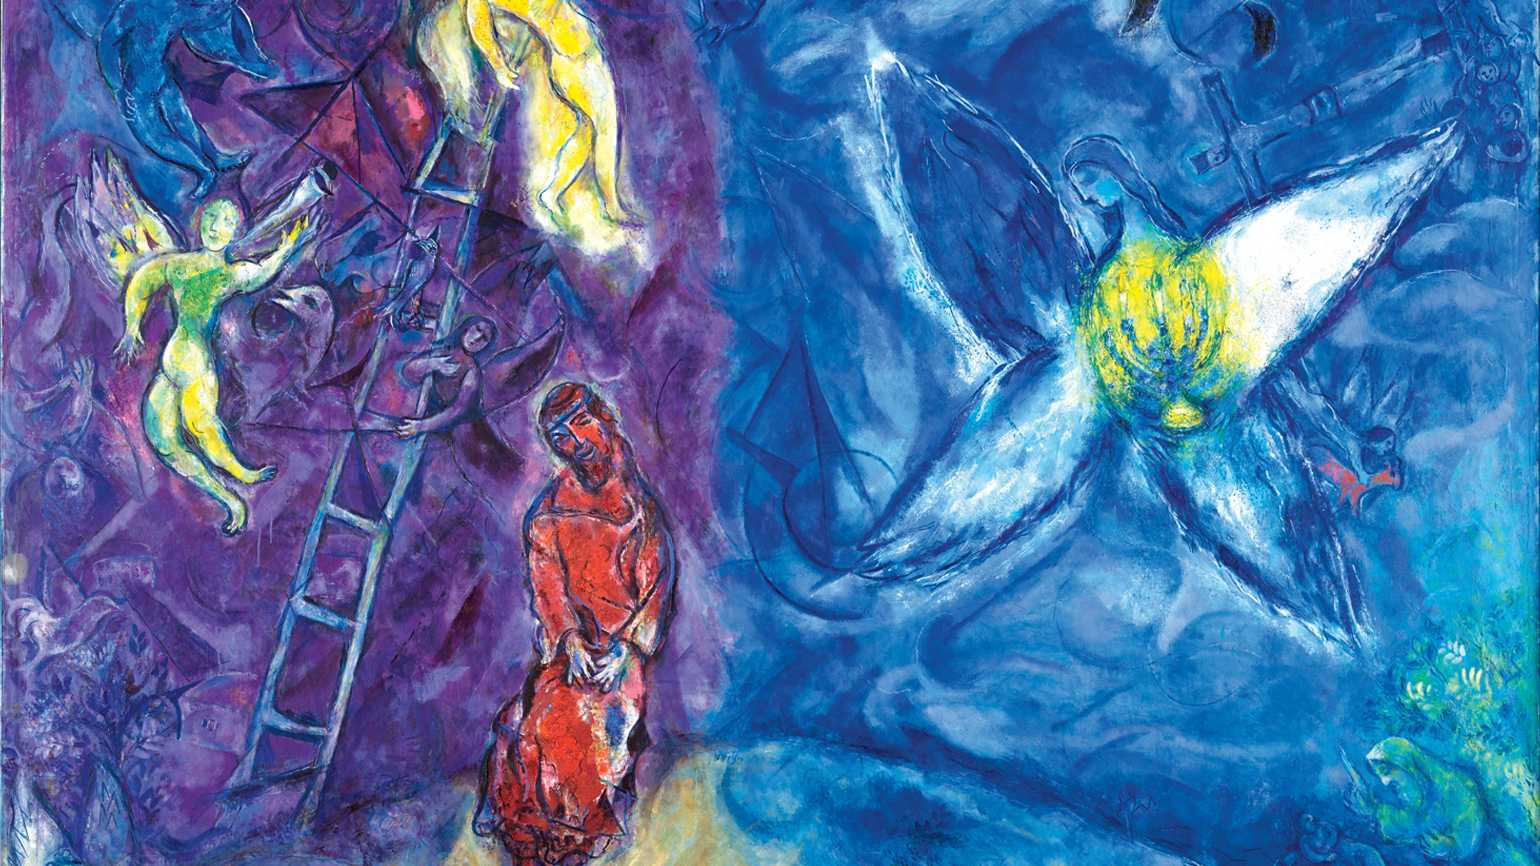 Marc Chagall's 1966 painting Jacob's Dream